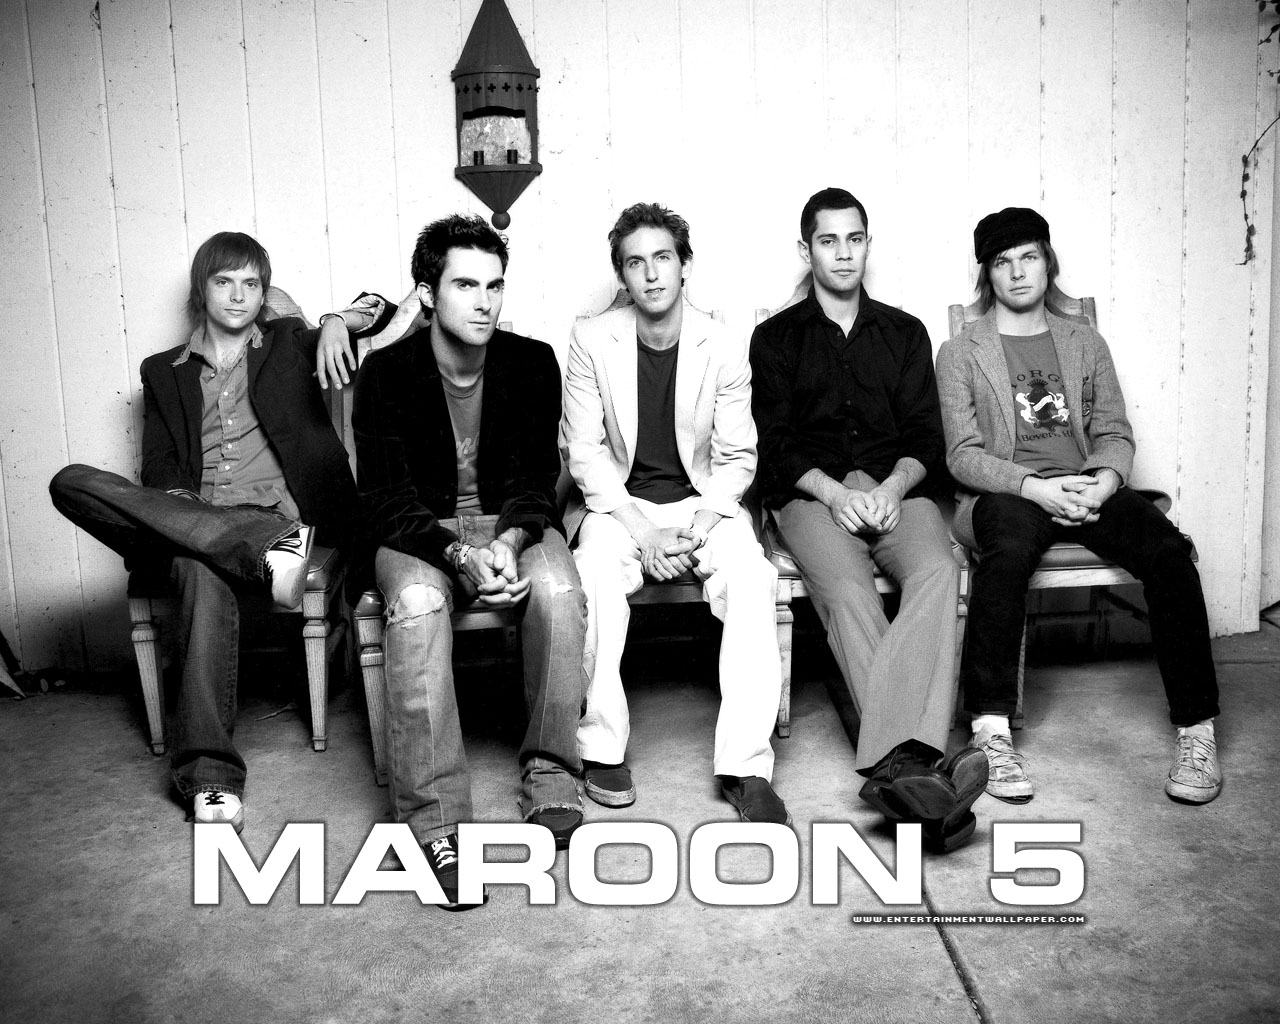 Hd Wallpaper Iphone 7 Maroon 5 Wallpapers High Quality Download Free